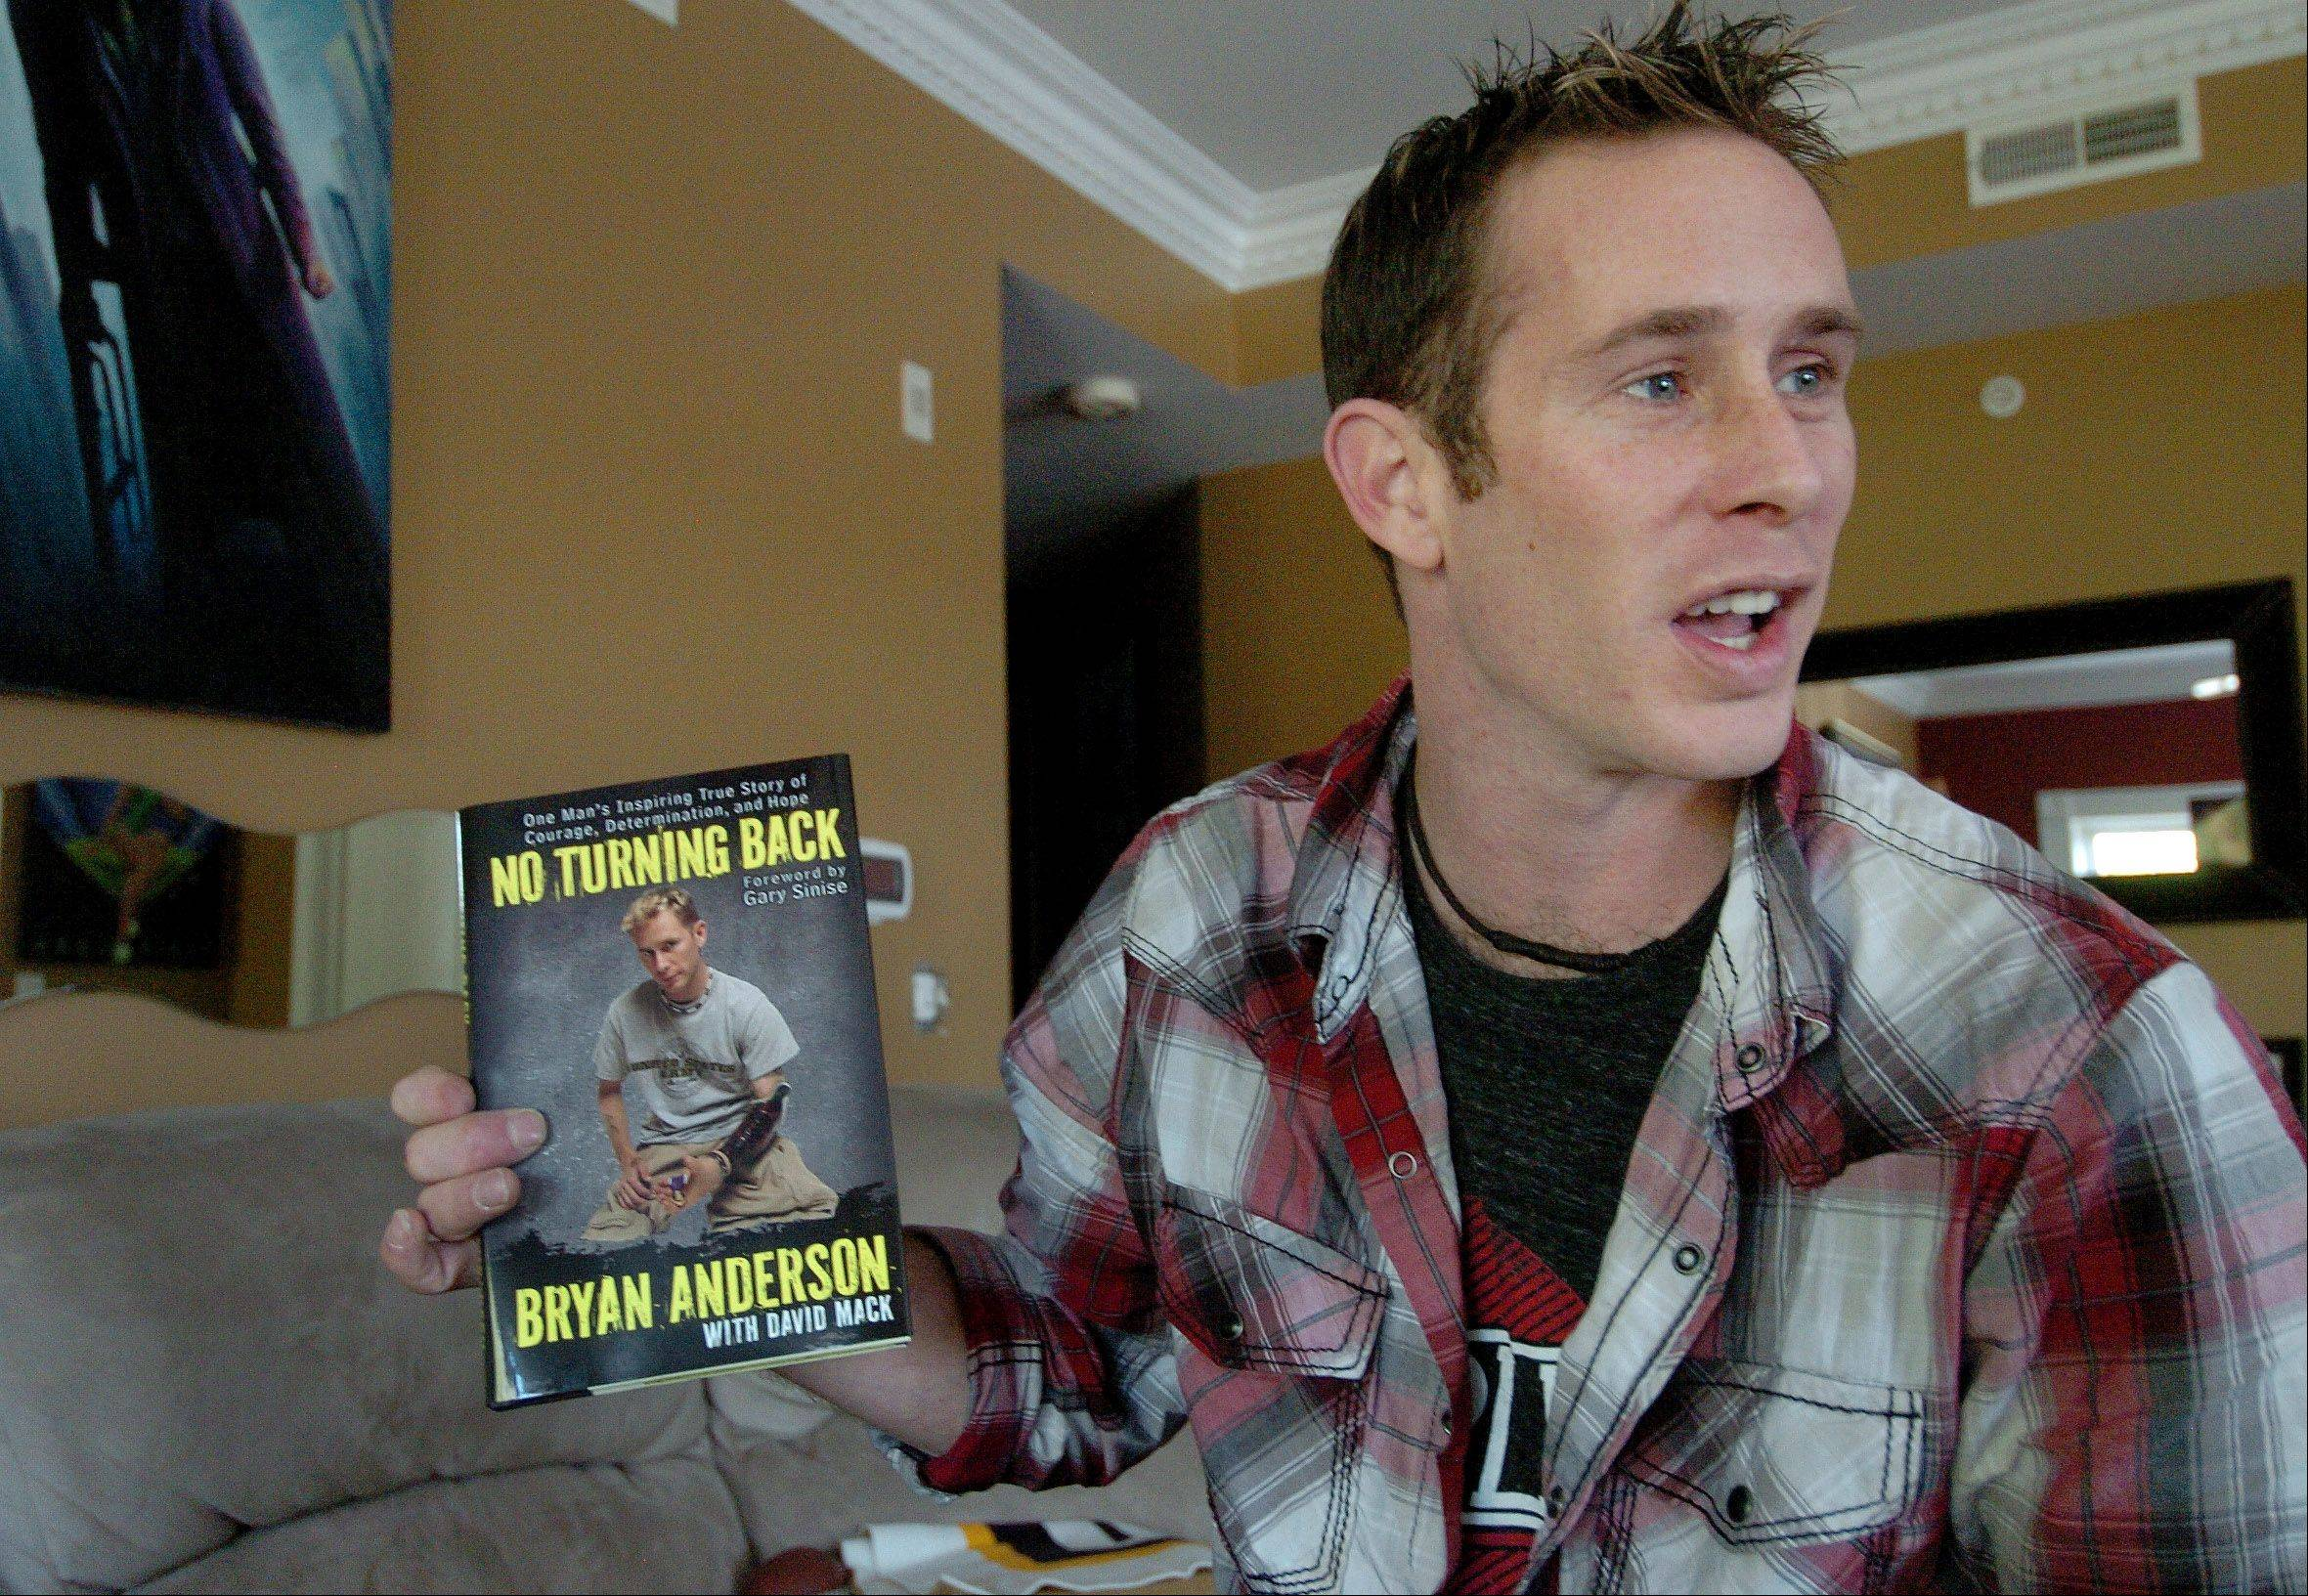 Bryan Anderson will sign copies of his book at 6:30 p.m. Friday at the Book Stall in Winnetka.